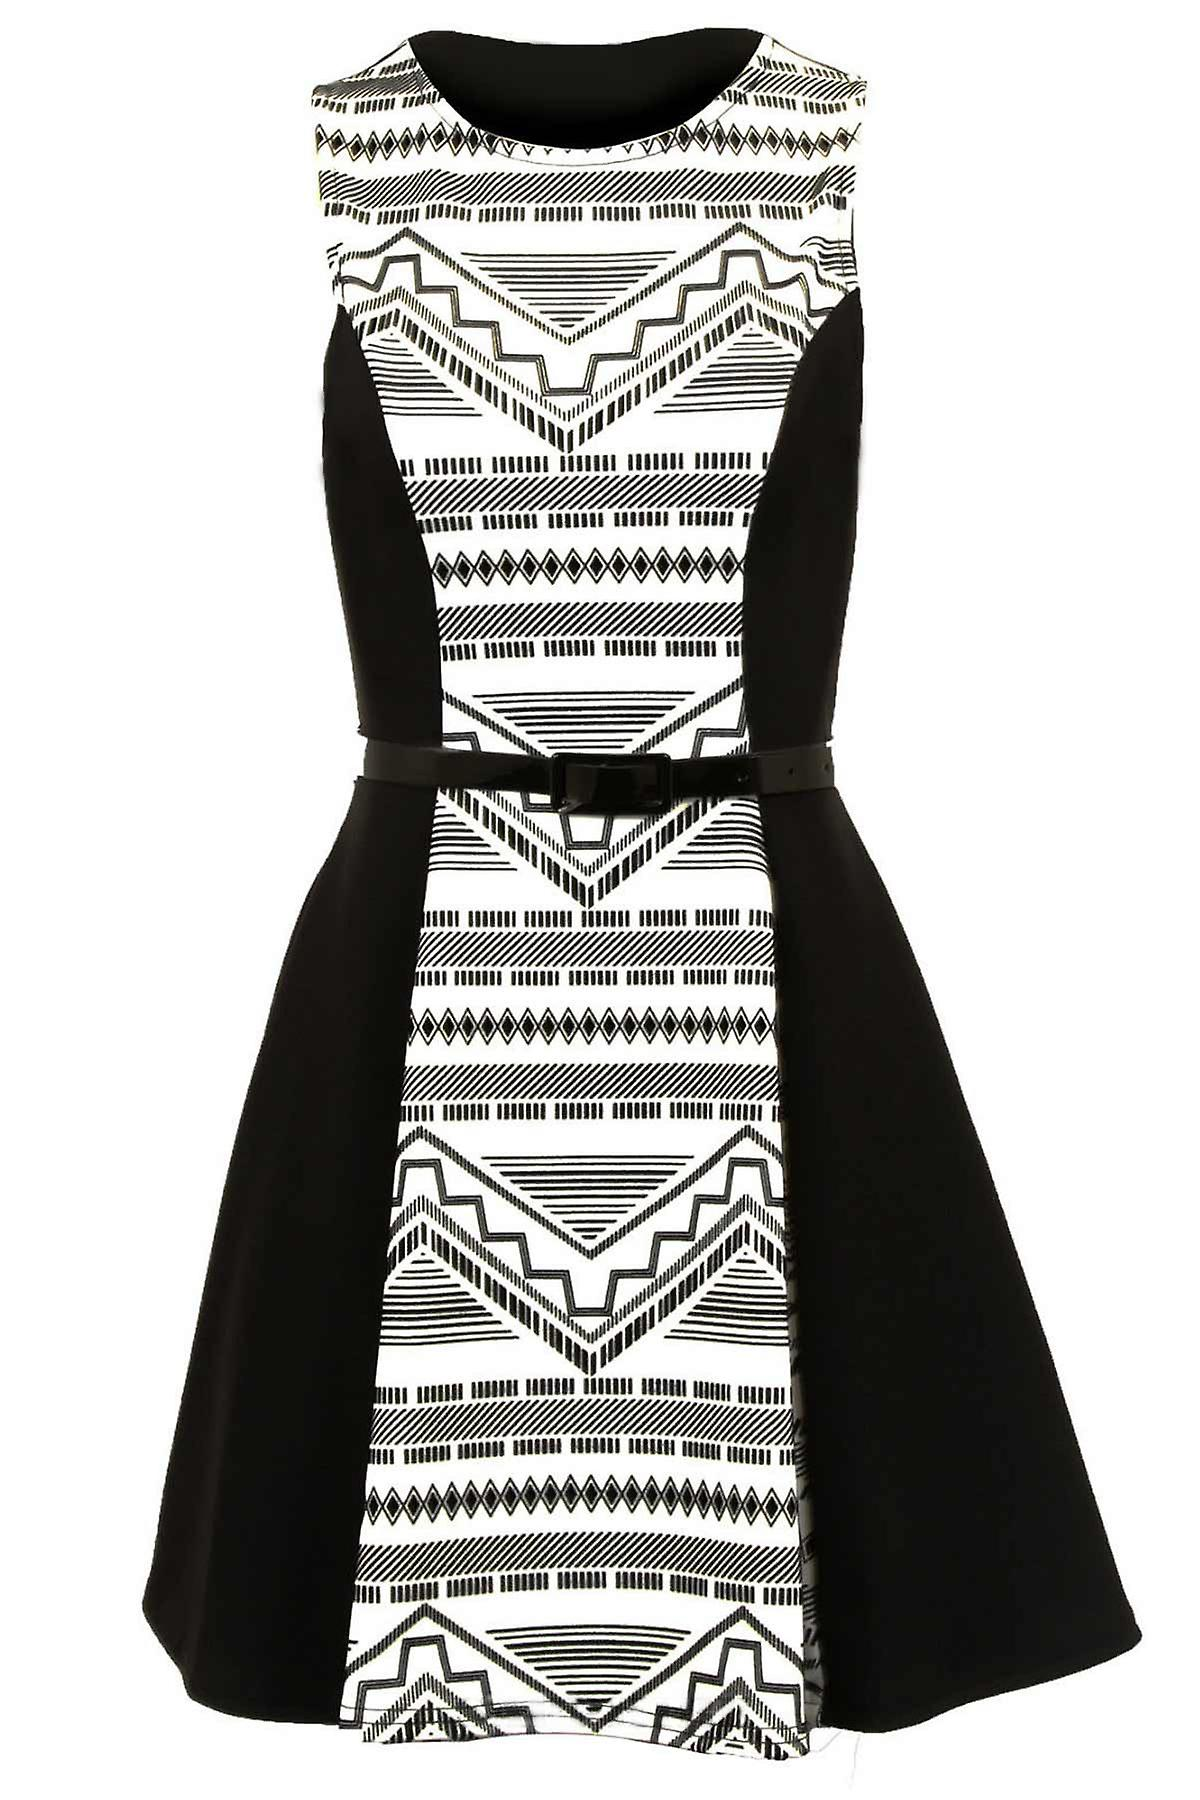 Ladies Sleeveless Flock Panel Aztec Flare Belted Short Women's Dress